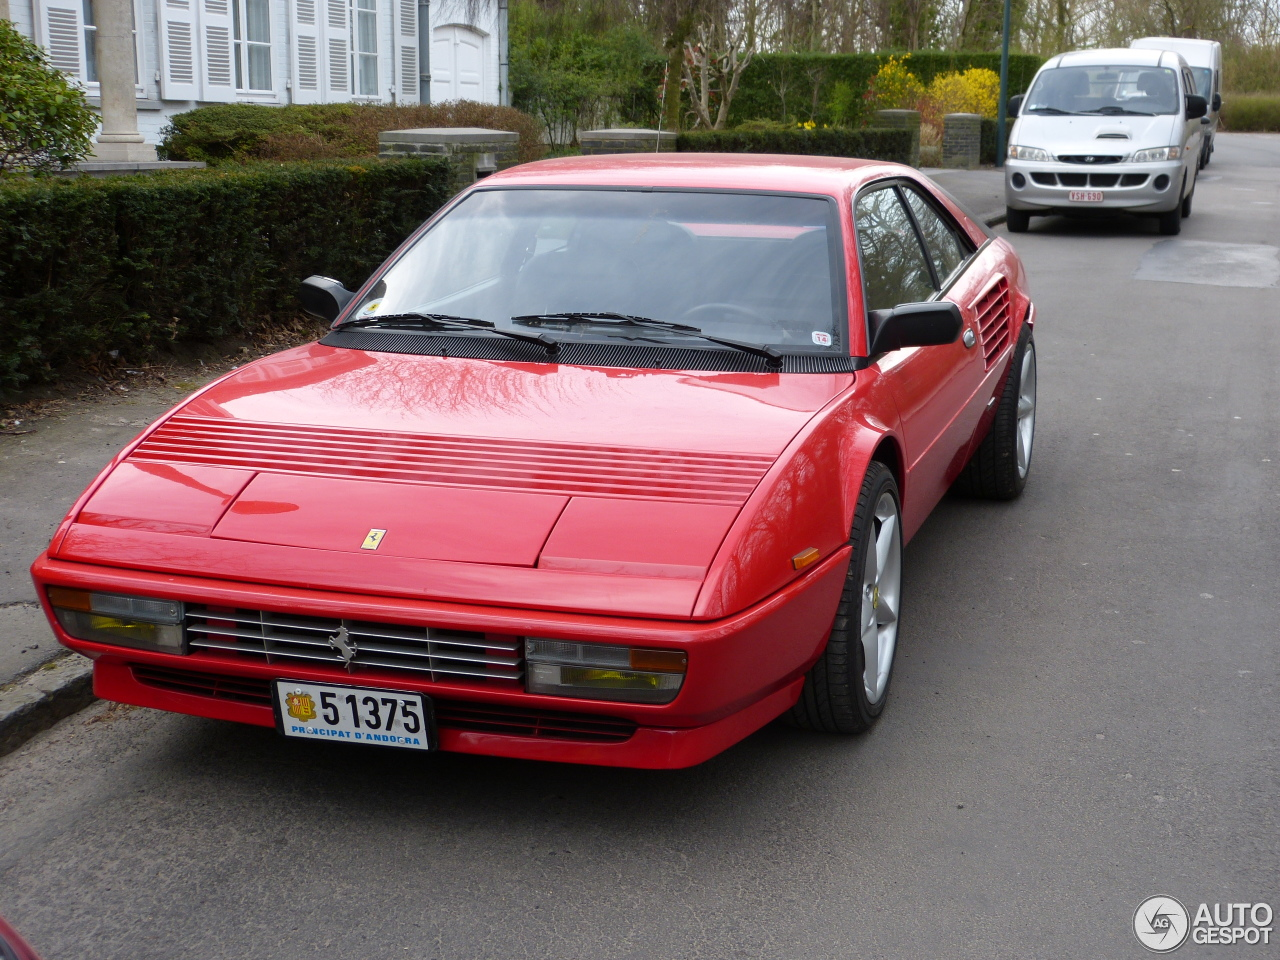 ferrari mondial t 19 mars 2014 autogespot. Black Bedroom Furniture Sets. Home Design Ideas